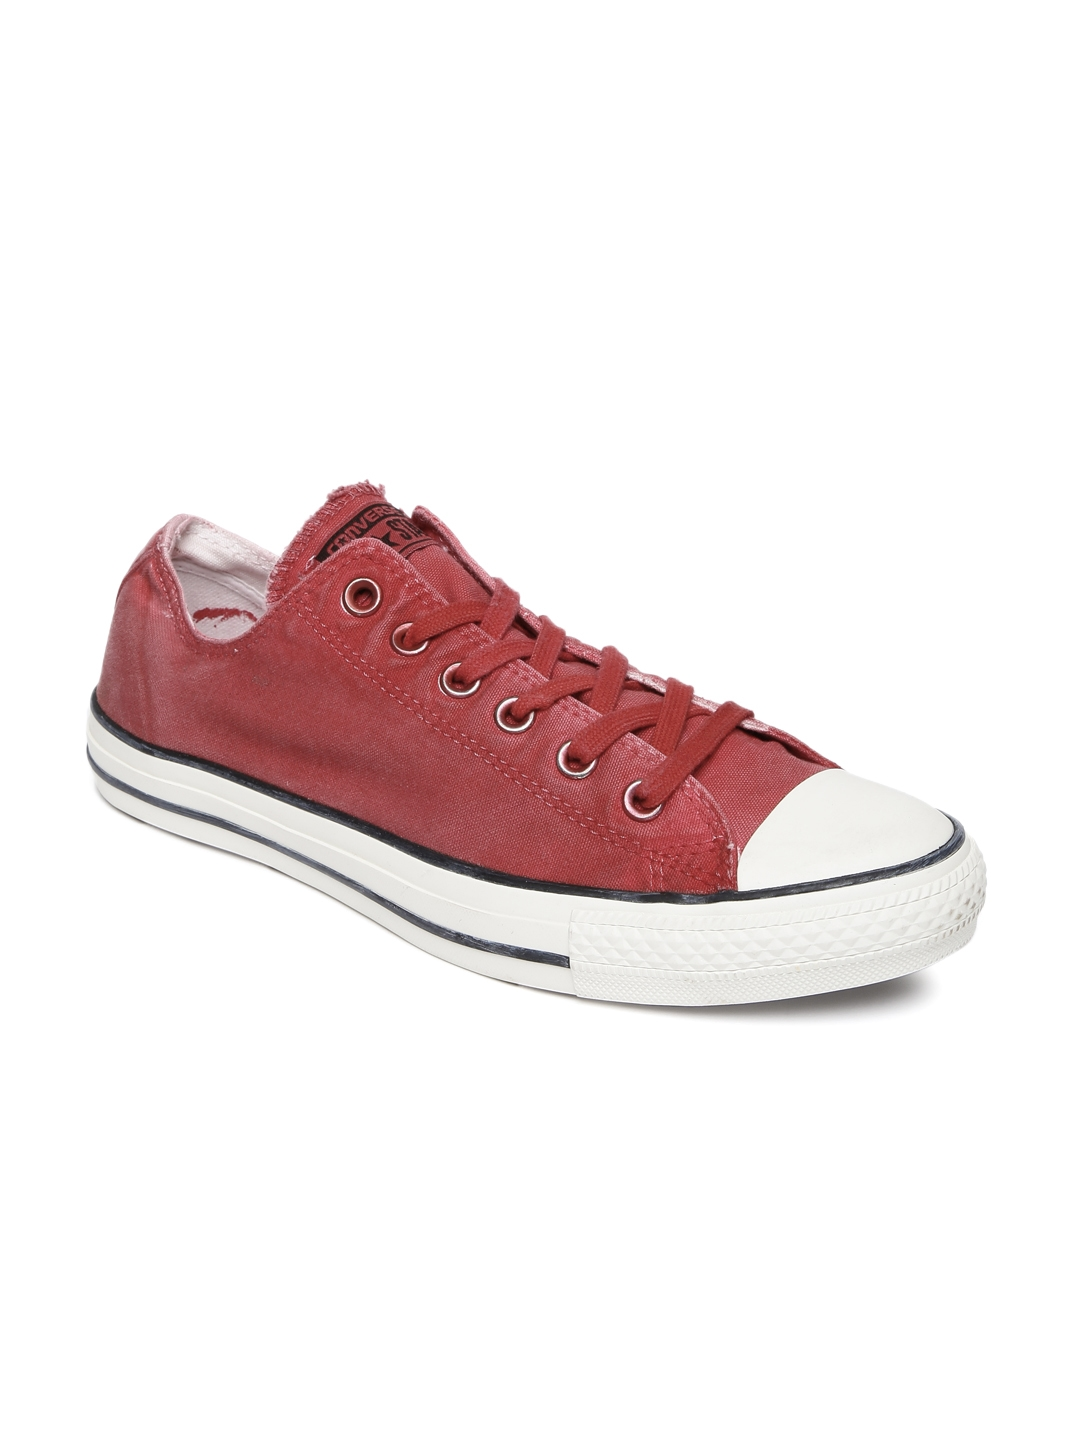 converse red shoes. converse red solid sneakers shoes